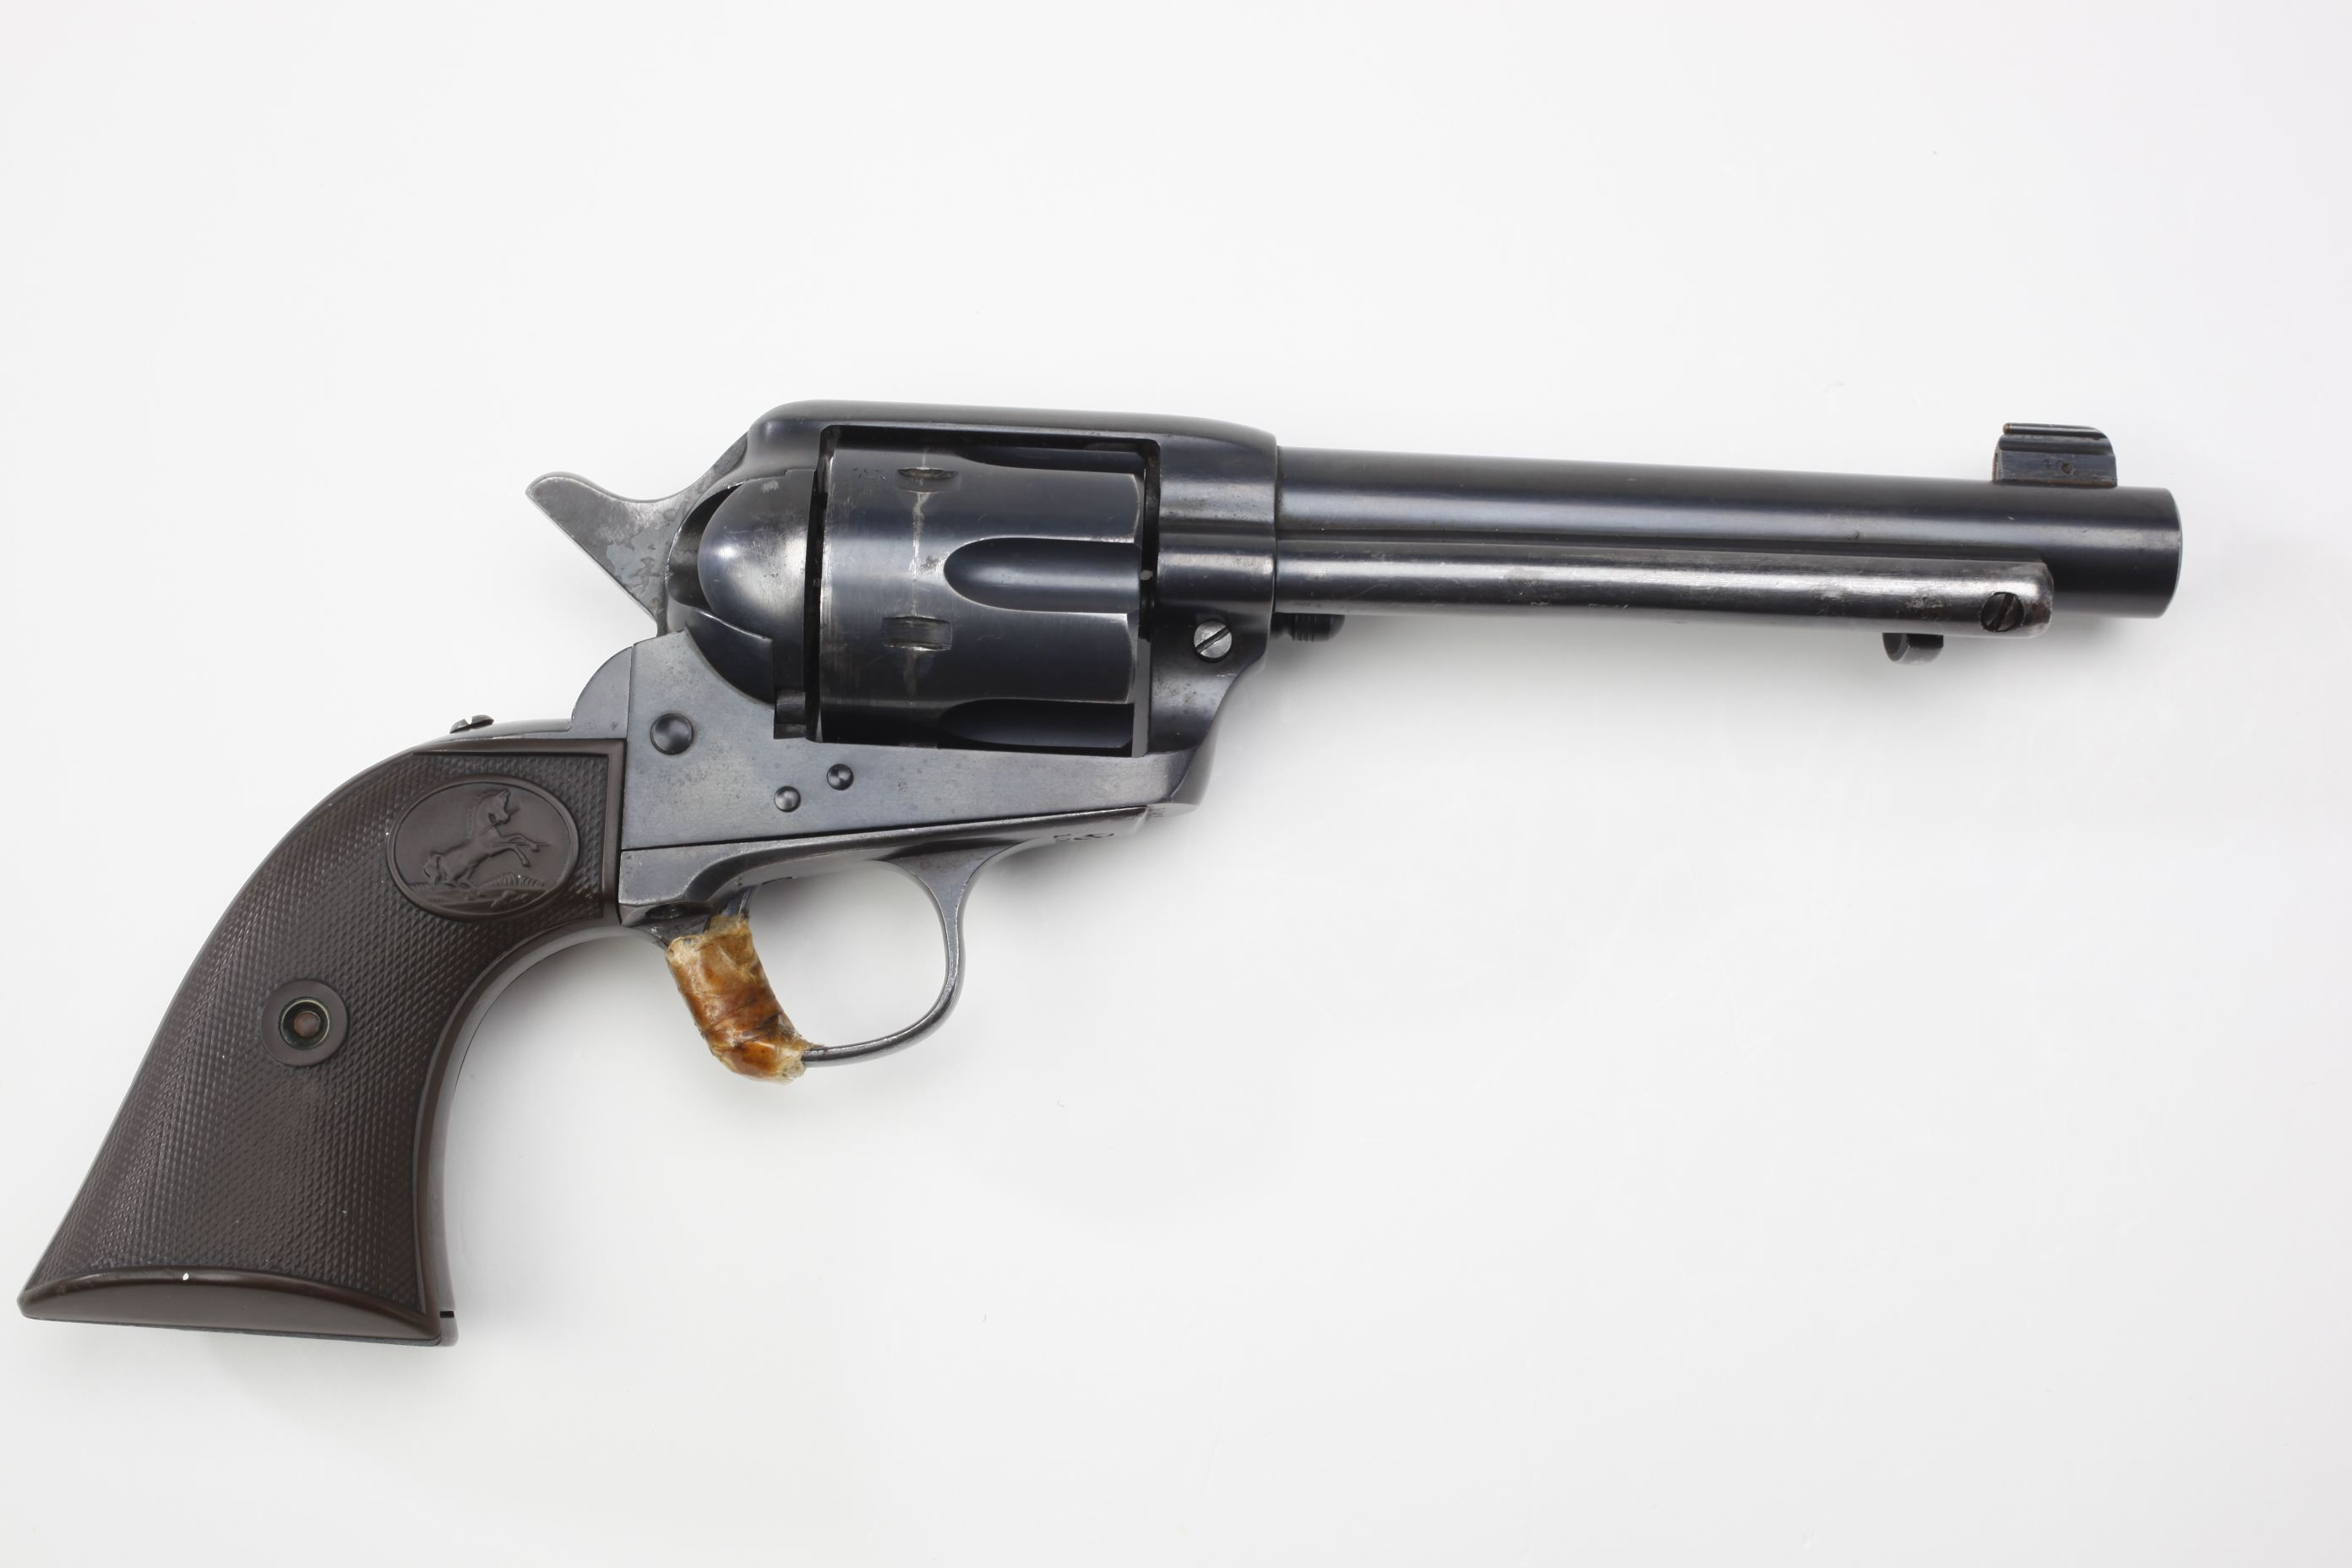 Colt Model 1873 Single Action Army Revolver (2)